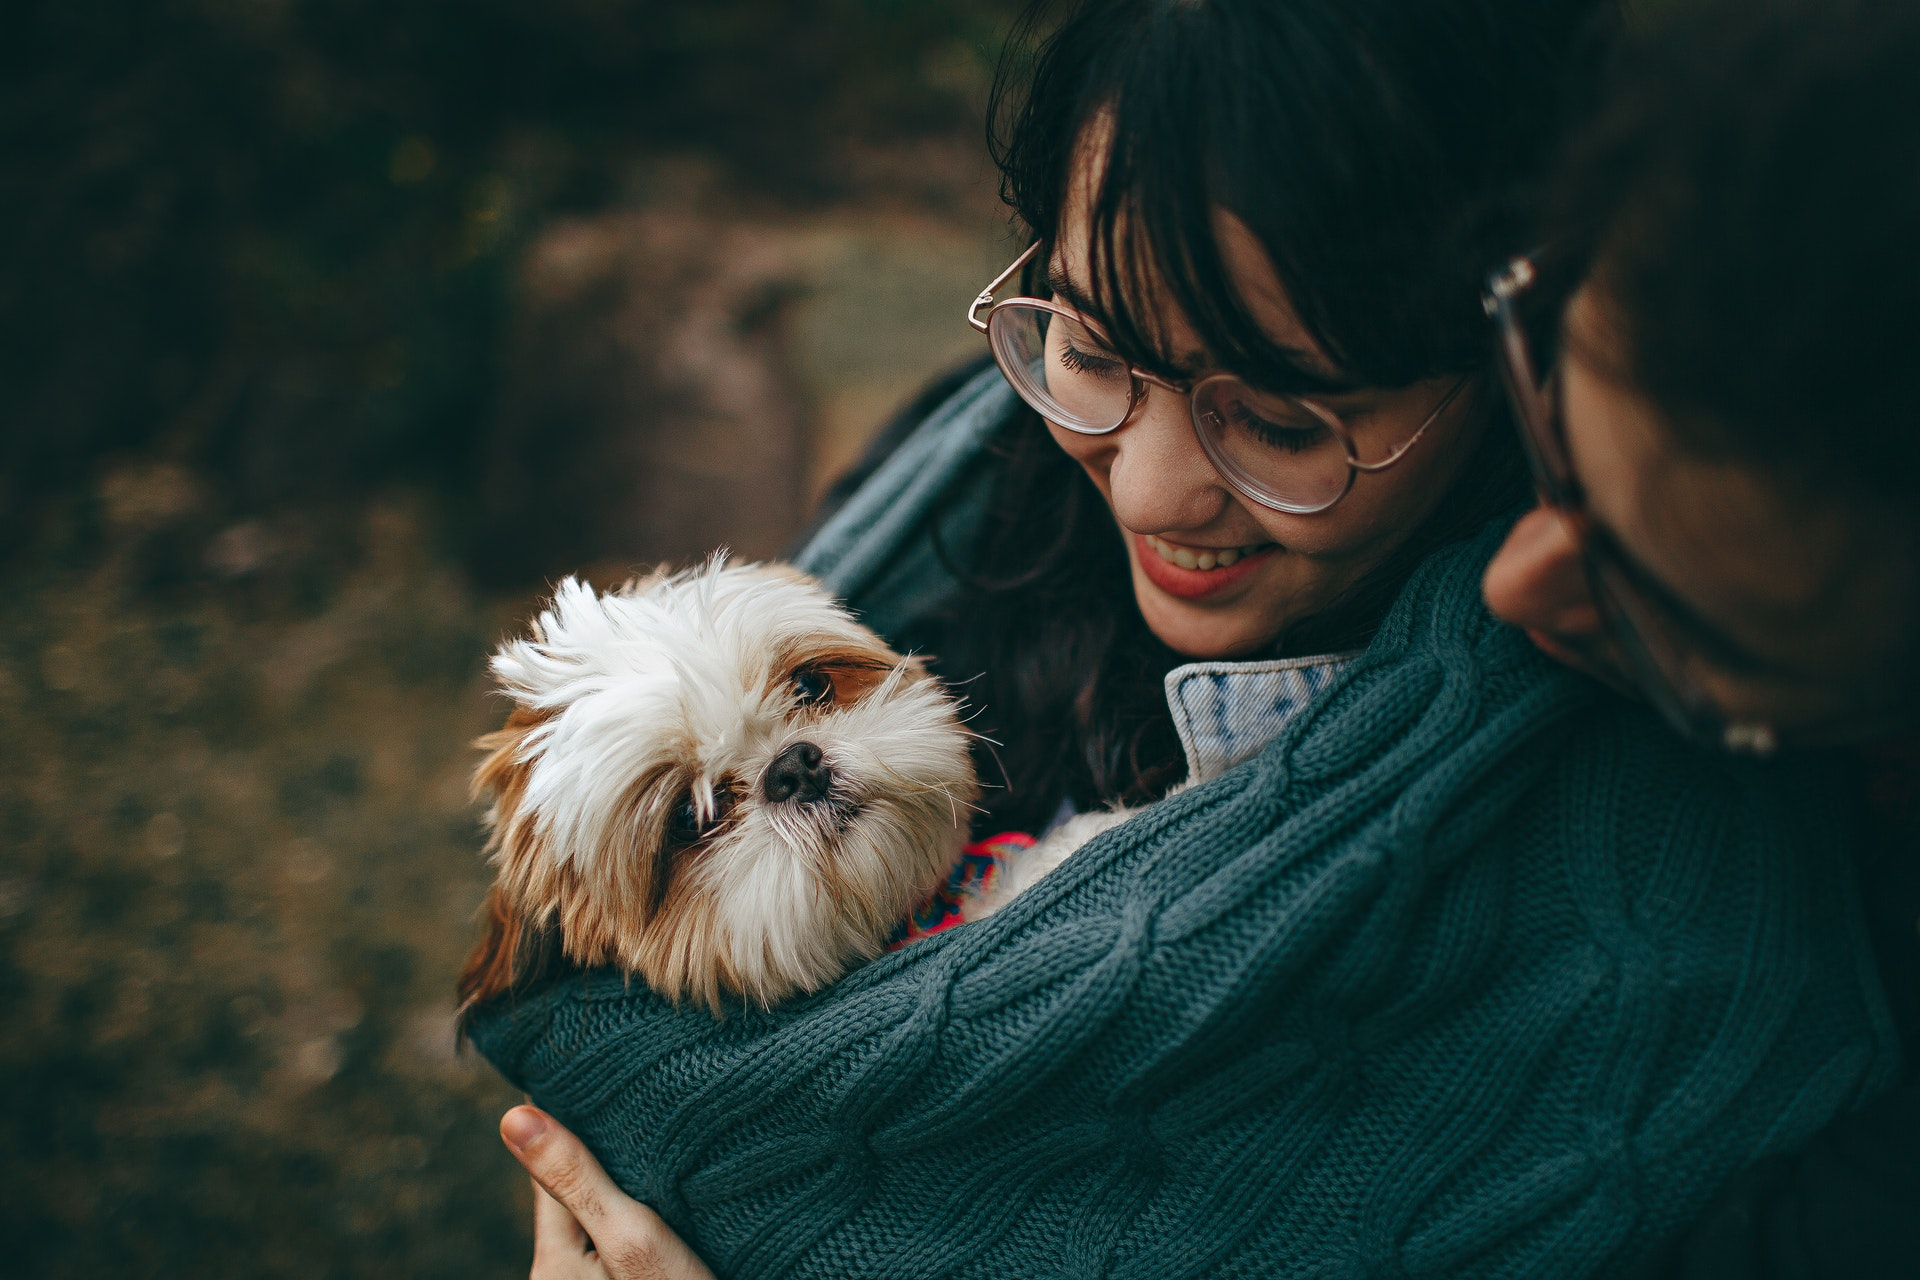 https://www.pexels.com/photo/selective-focus-photography-of-white-and-tan-shih-tzu-puppy-carrying-by-smiling-woman-1378849/